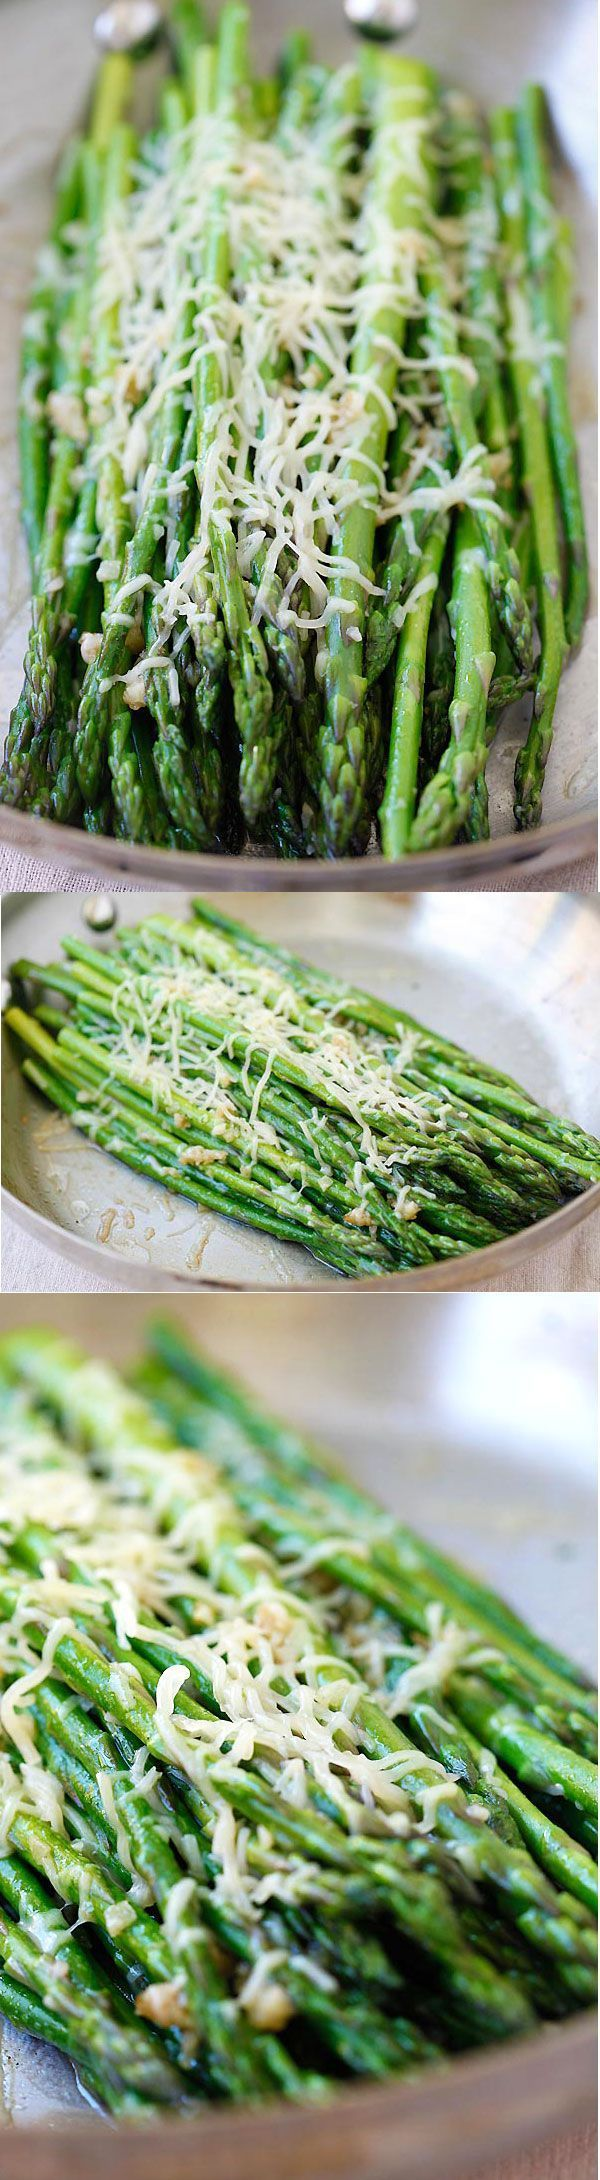 Skillet Parmesan Asparagus – the easiest asparagus recipe ever! 10 mins on skillet then topped with Parmesan cheese, healthy and tasty!   rasamalaysia.com